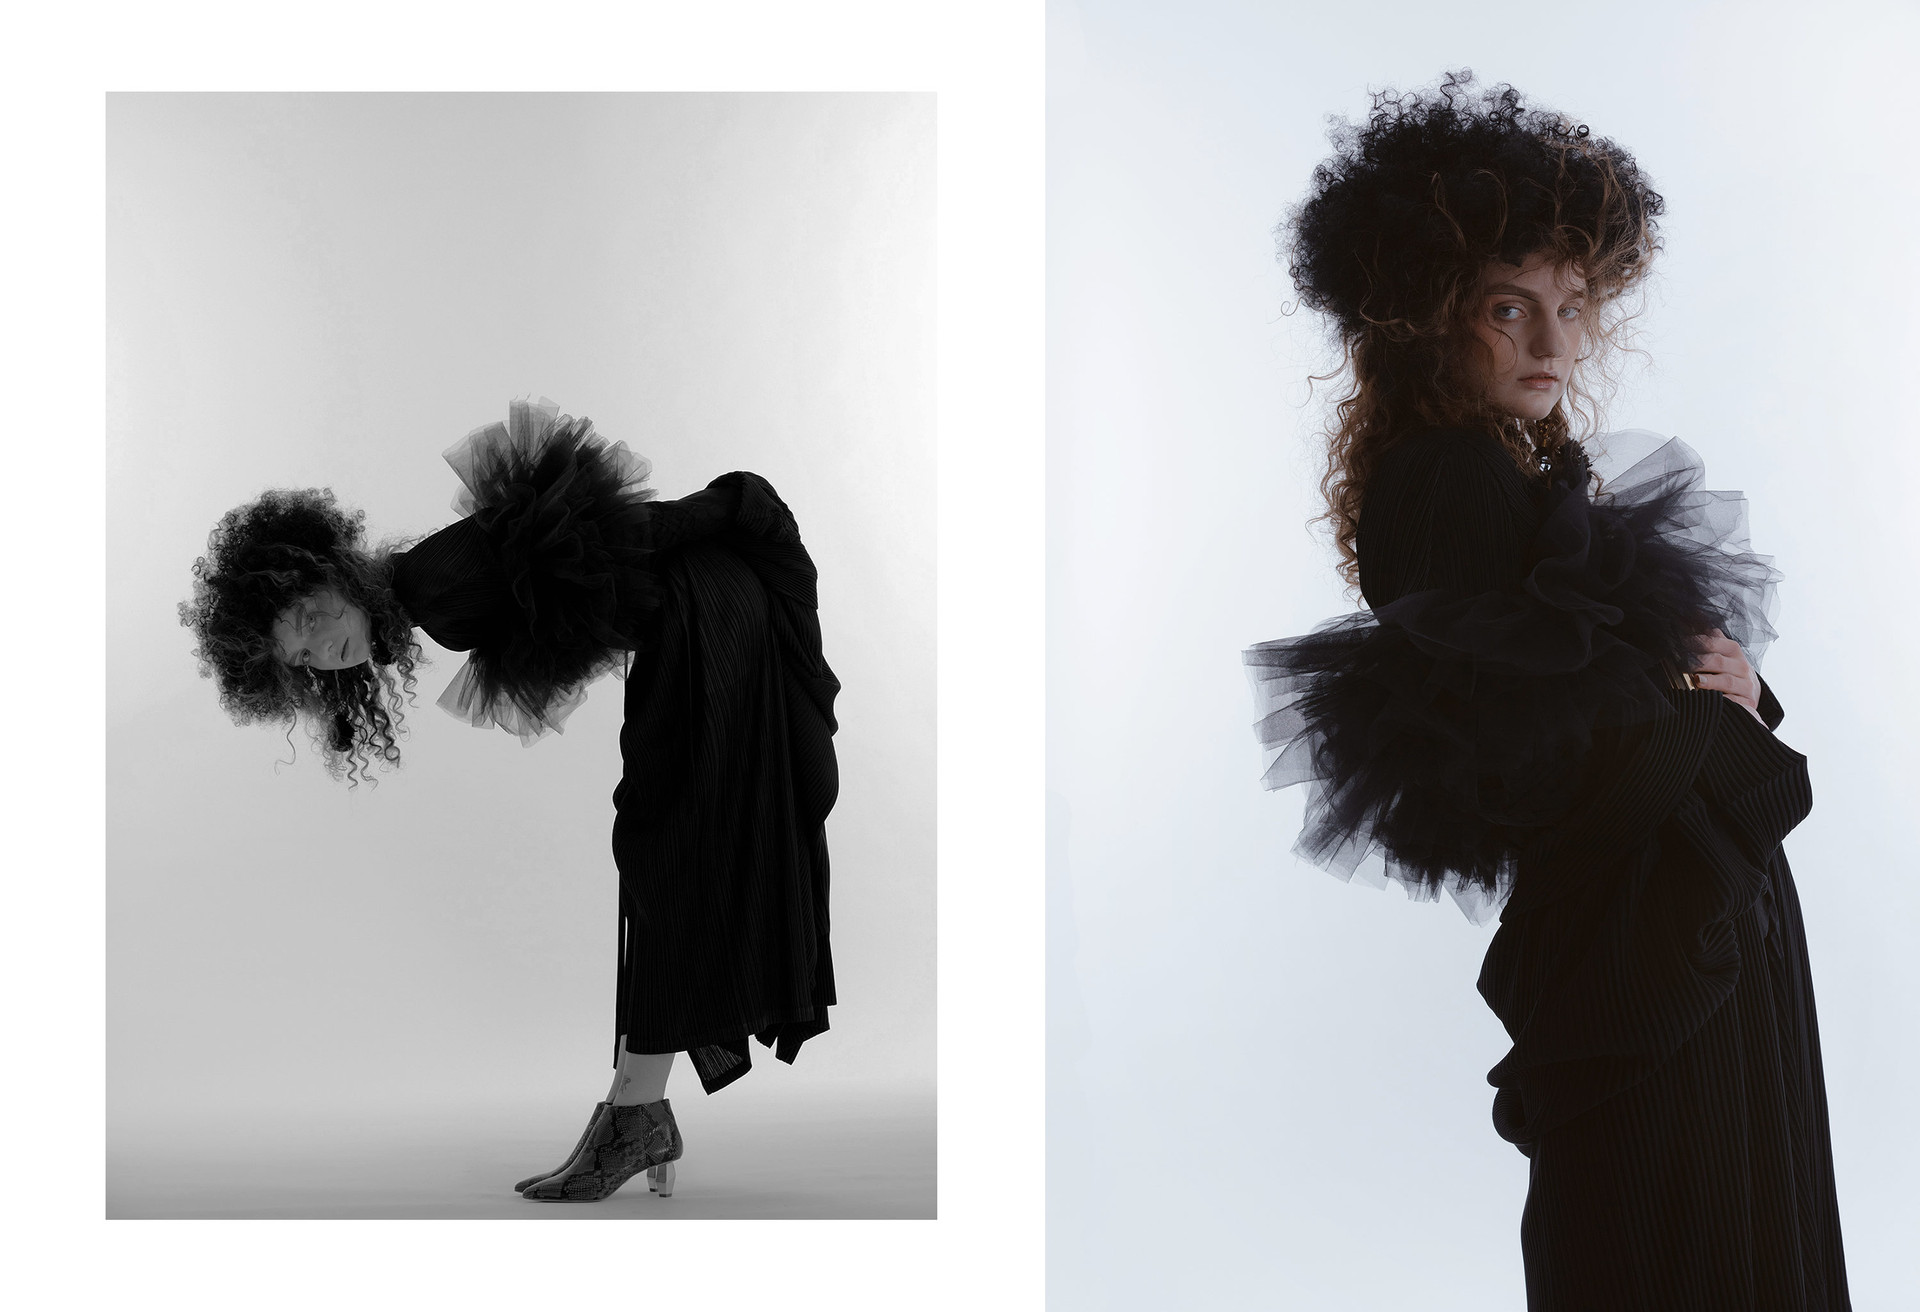 EDITORIAL_theSilhouettes_UH_5754.jpg